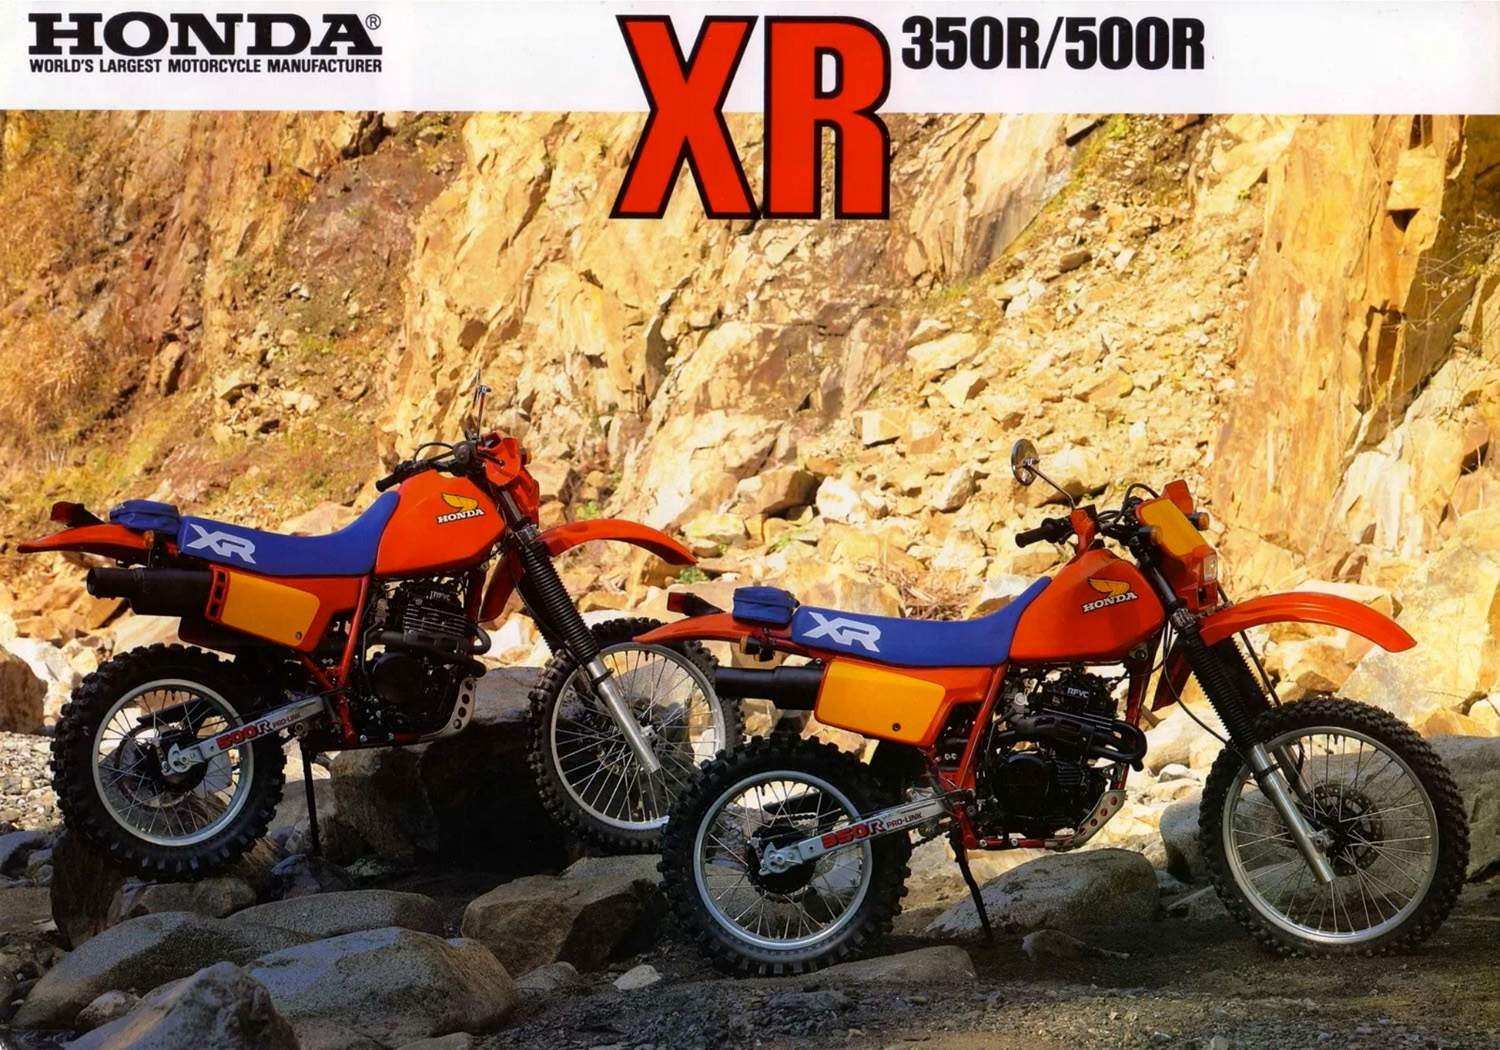 Xr500r Specs Images Of Home Design Xr350r Wiring Diagram Honda